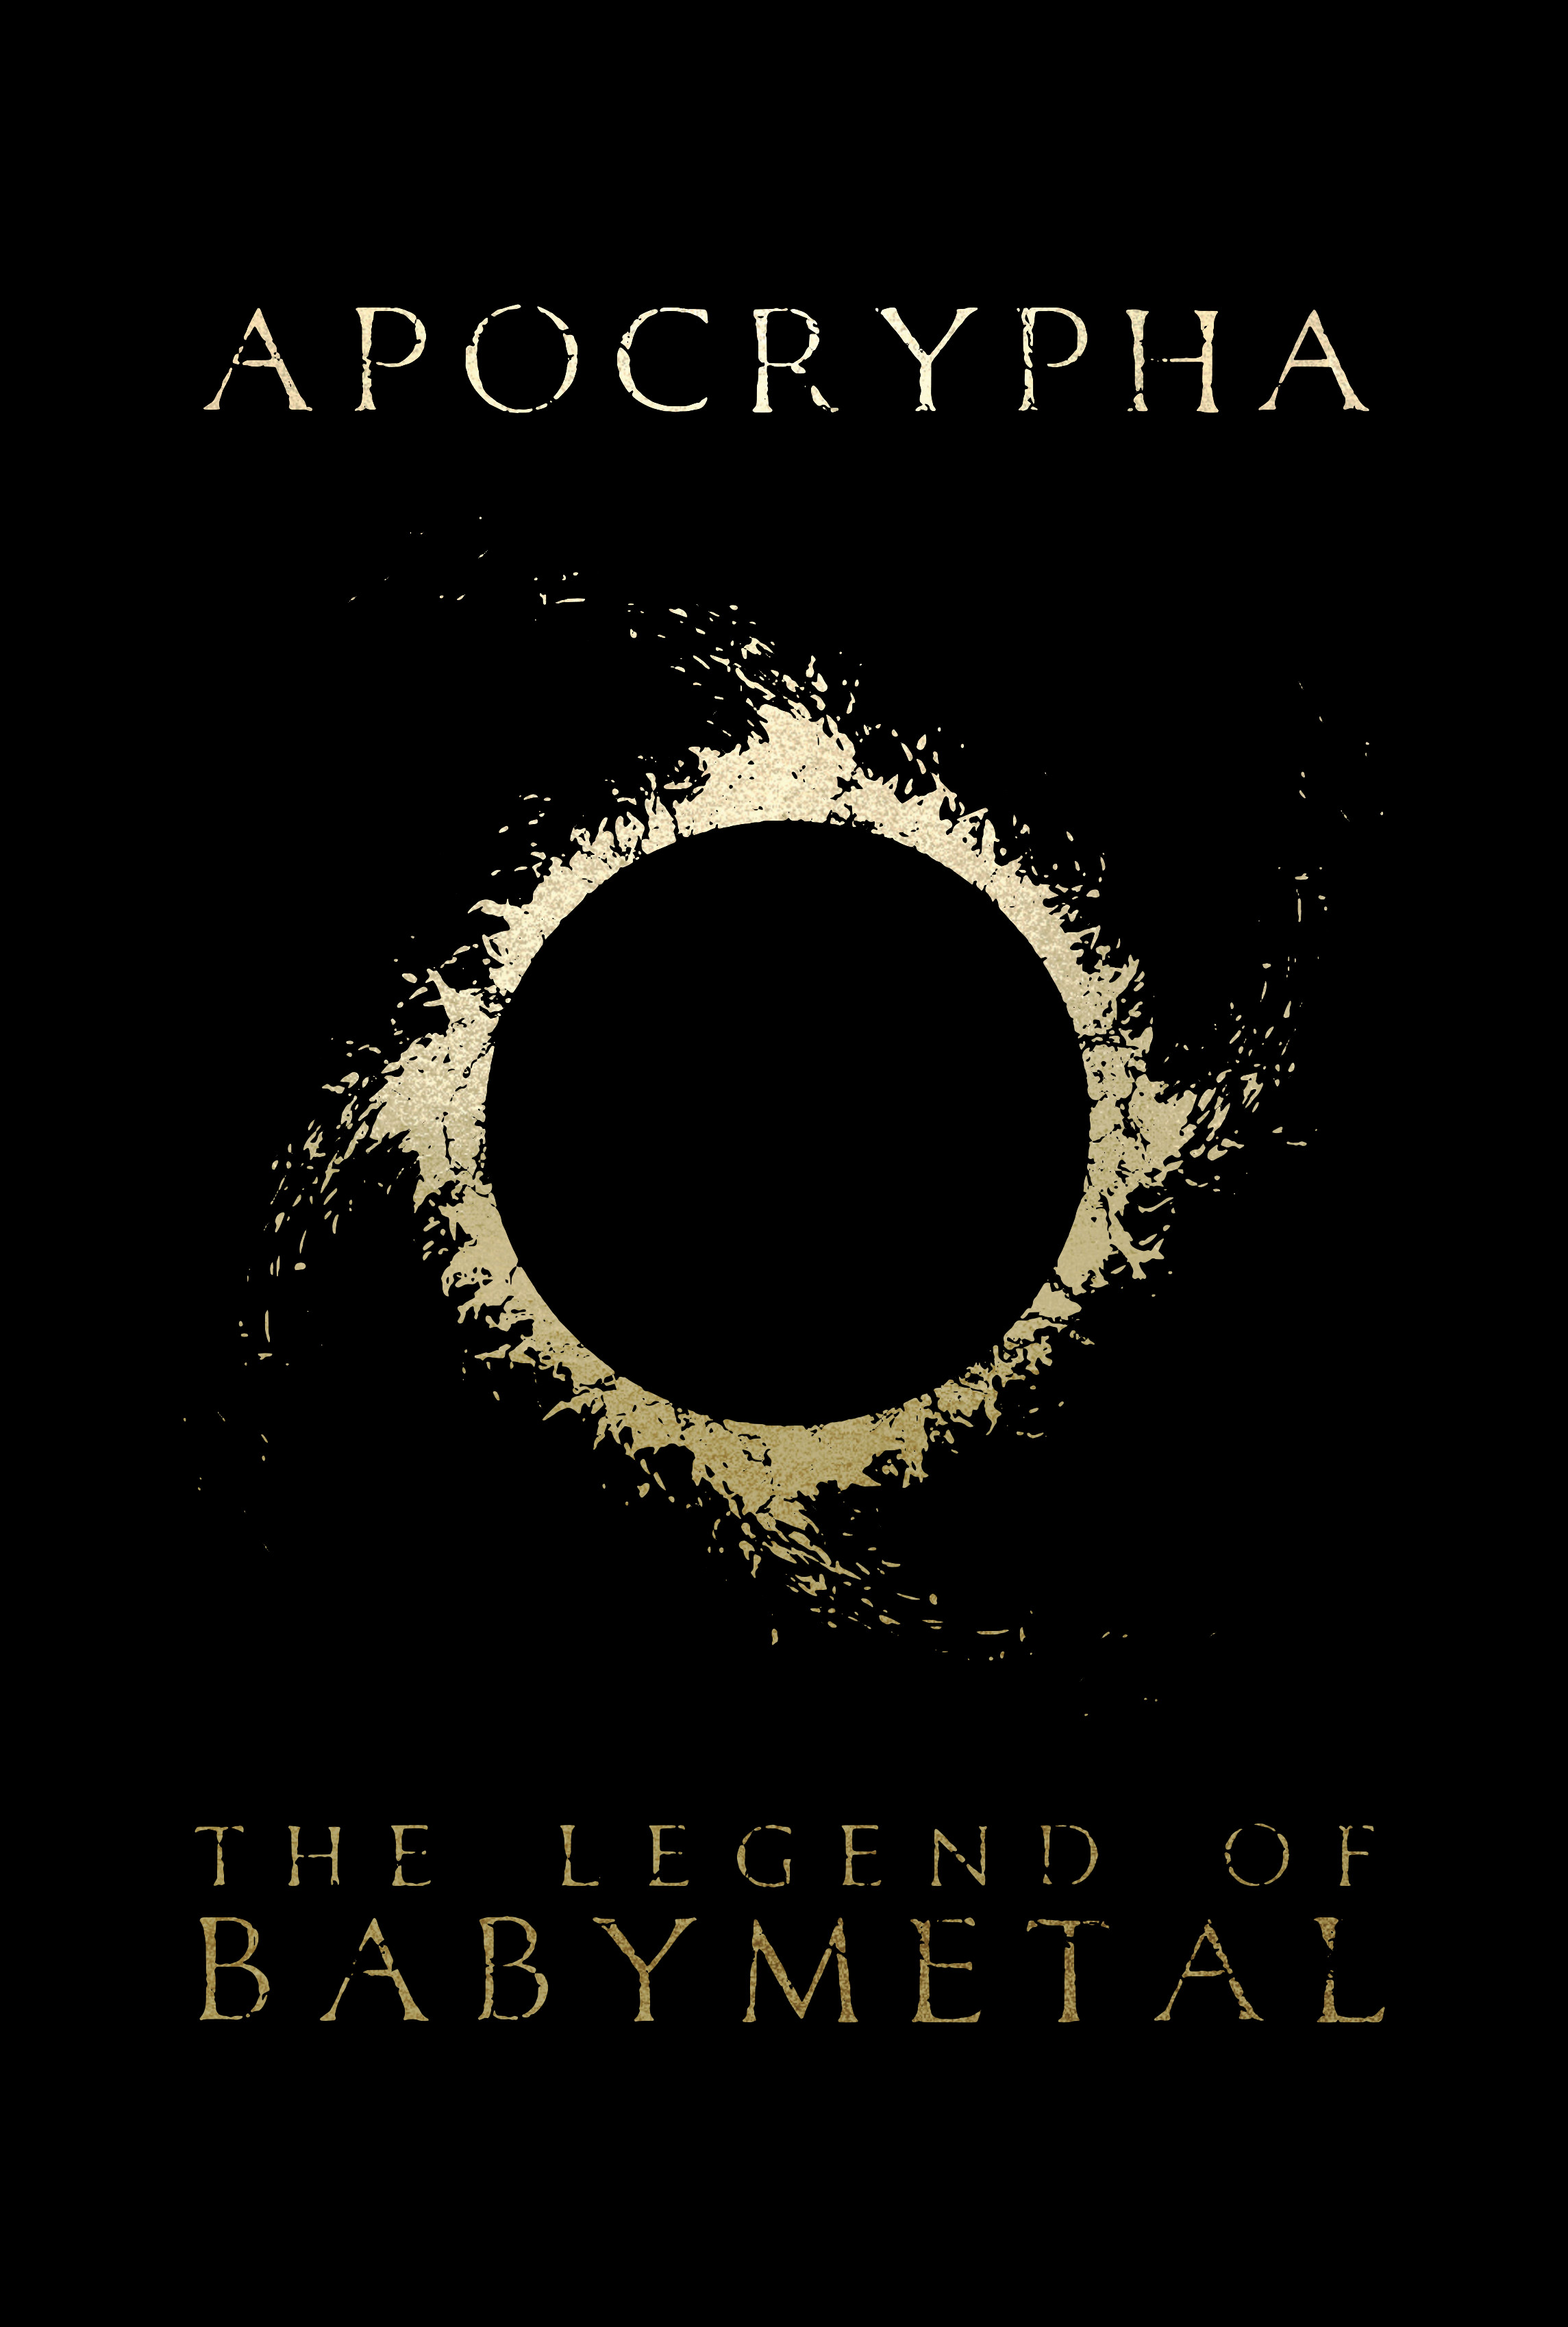 Apocrypha The Legend of BABYMETAL  by the Prophet of the Fox God and GMB Chomichuk  Discover the myth of the worldwide music sensation BABYMETAL. Tasked with defeating the forces of darkness and division, the metal spirits must travel through a variety of eras of time, assuming different forms and identities. What we are seeing is not the BABYMETAL of the present. It's the original story based on BABYMETAL you've never heard before. The long-hidden metal spirit's apocrypha of the METAL RESISTANCE will emerge.   Limited Deluxe Edition of 500 available here.